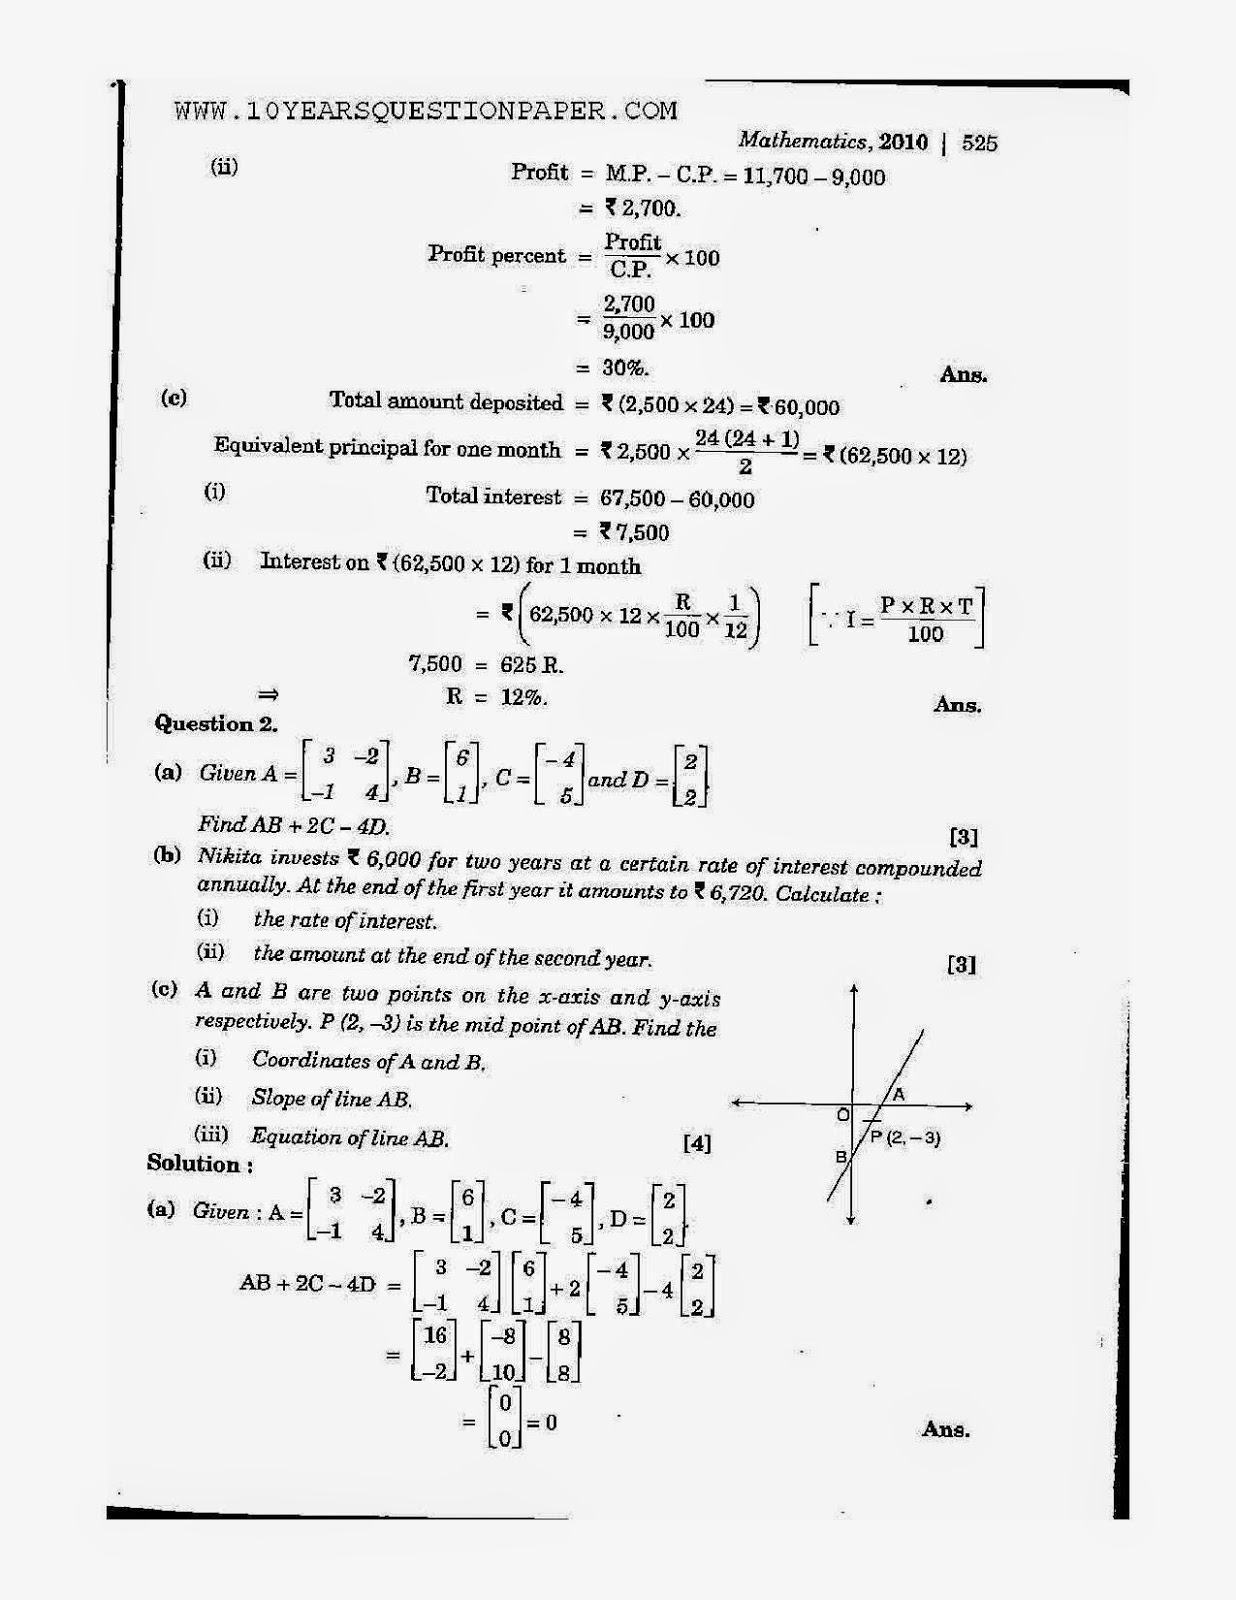 mathematical happenings 2 essay Find and download hsc past exam papers, with marking guidelines and notes from the marking centre (hsc marking feedback) , are available for each course  mathematics extension 2 version log performance band descriptions.